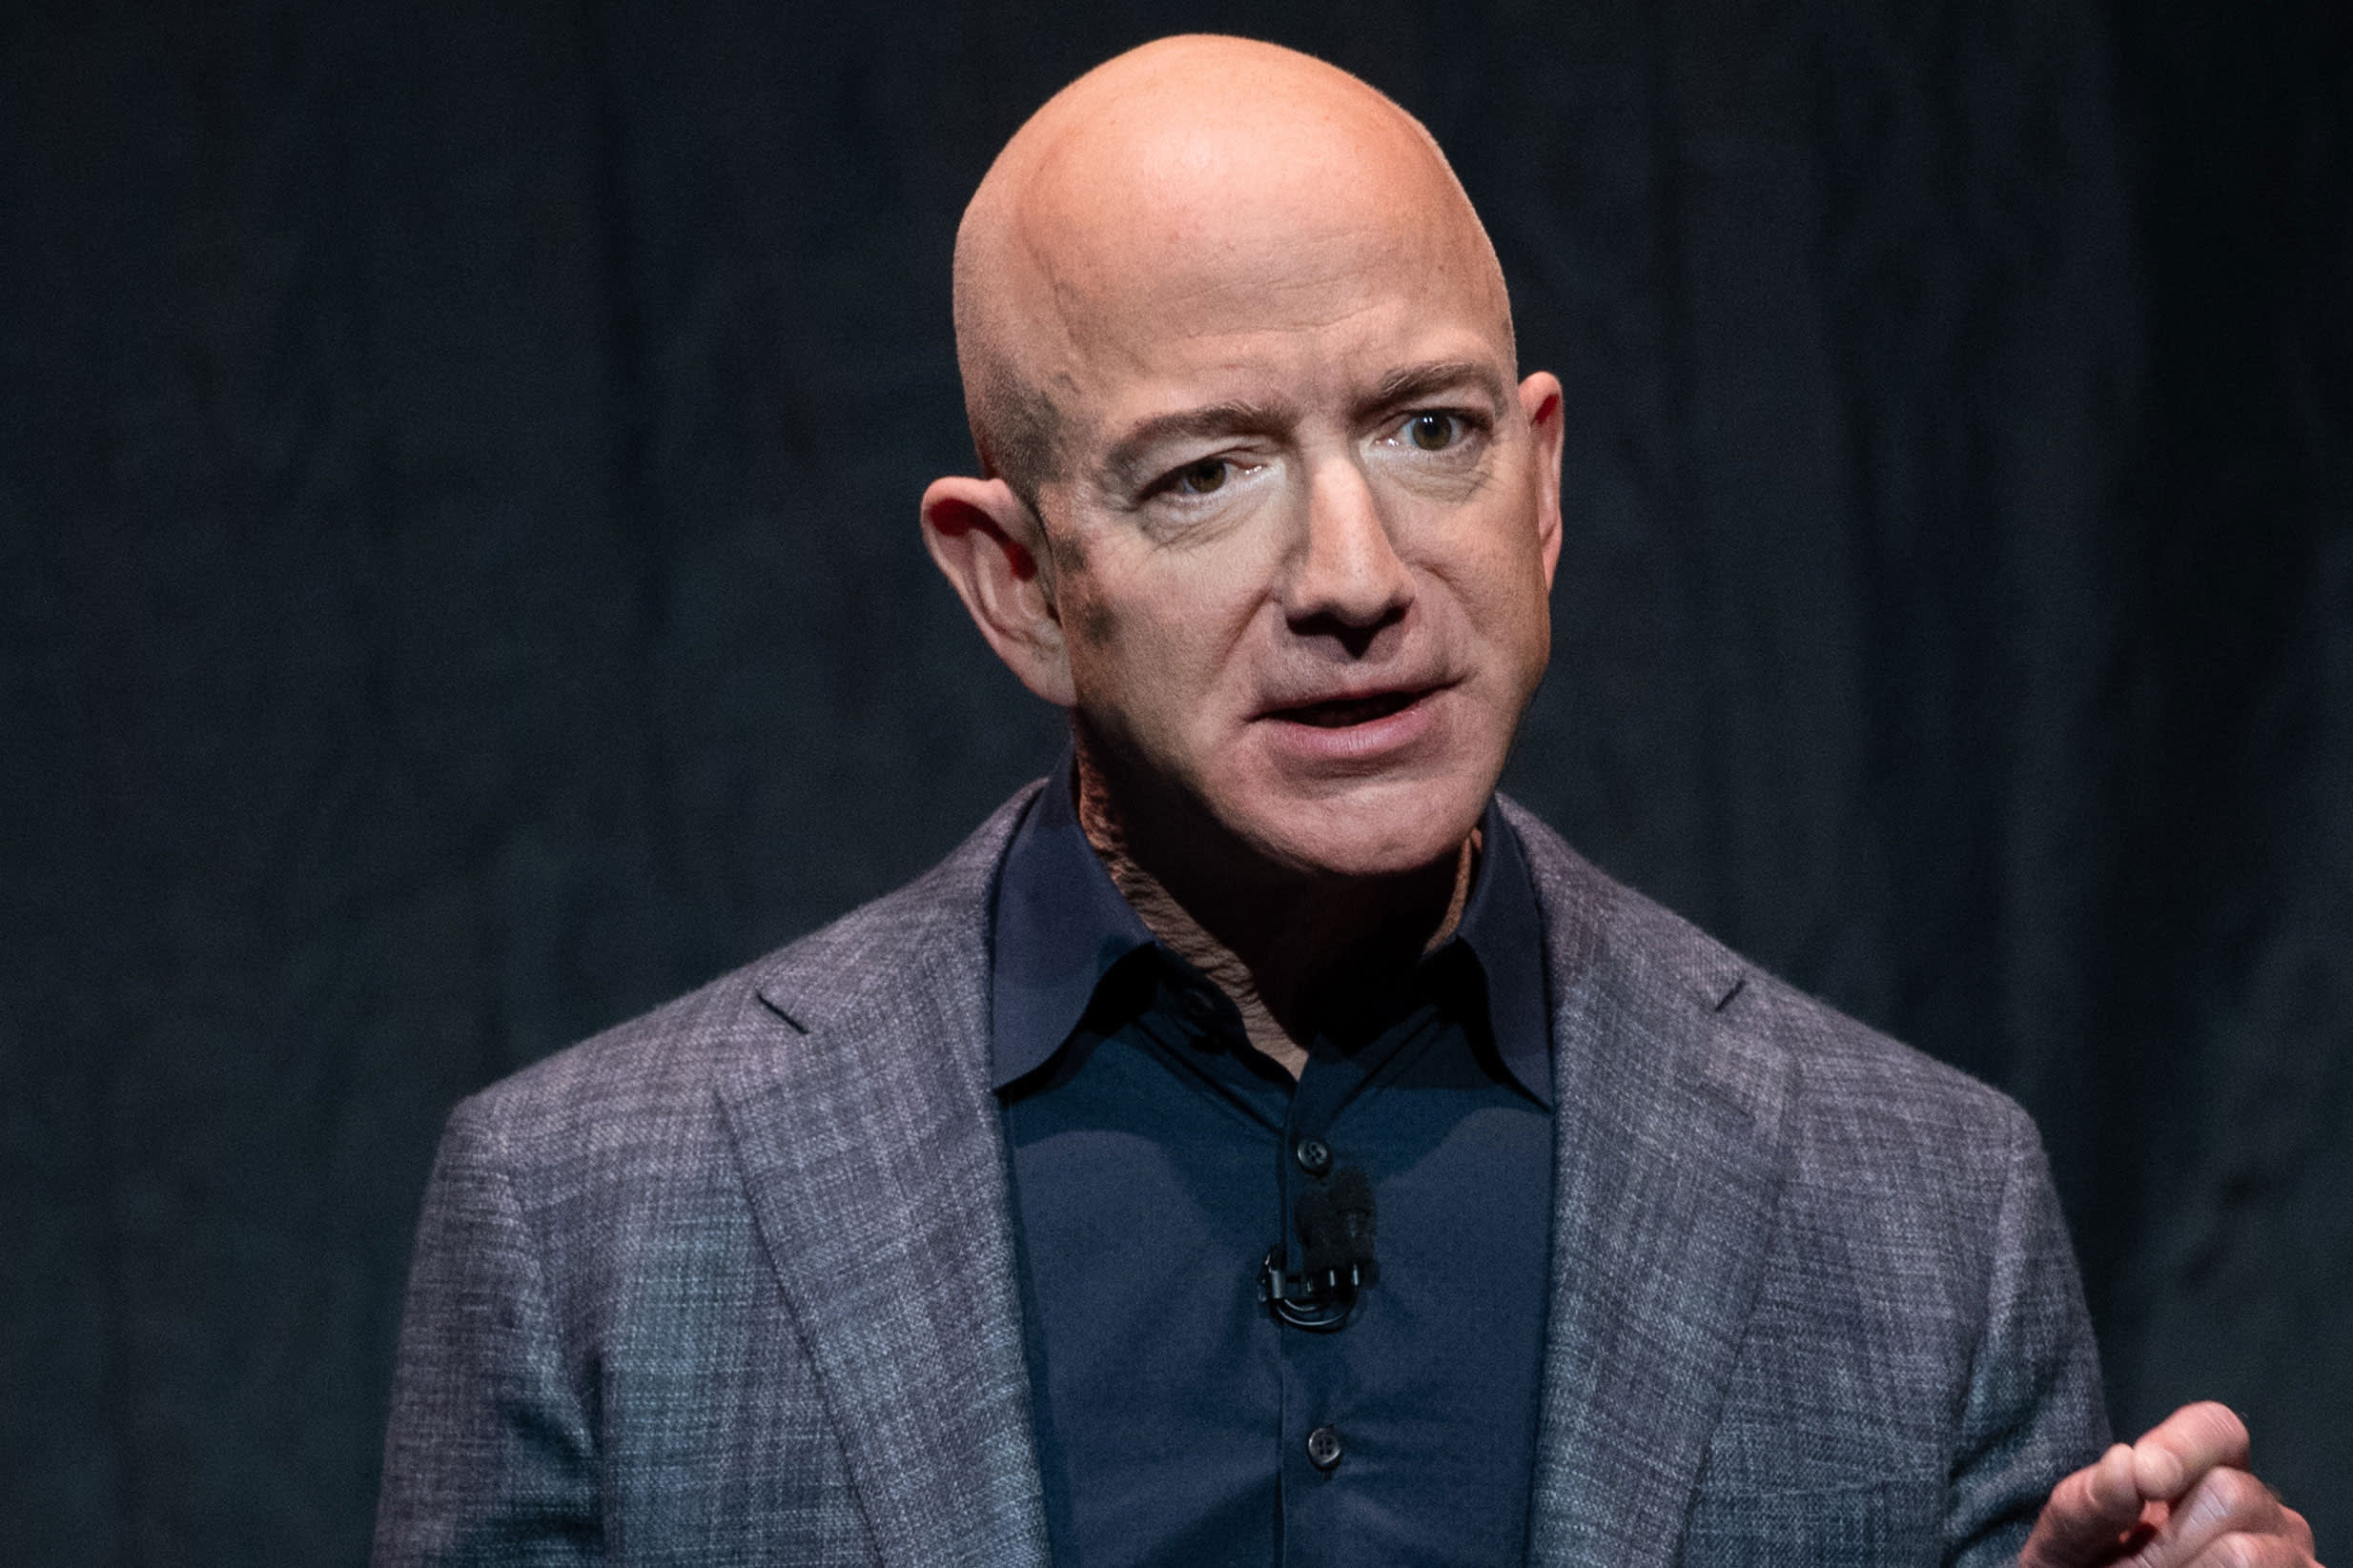 Jeff Bezos Re Mars Speech Disrupted By Protester Pushes